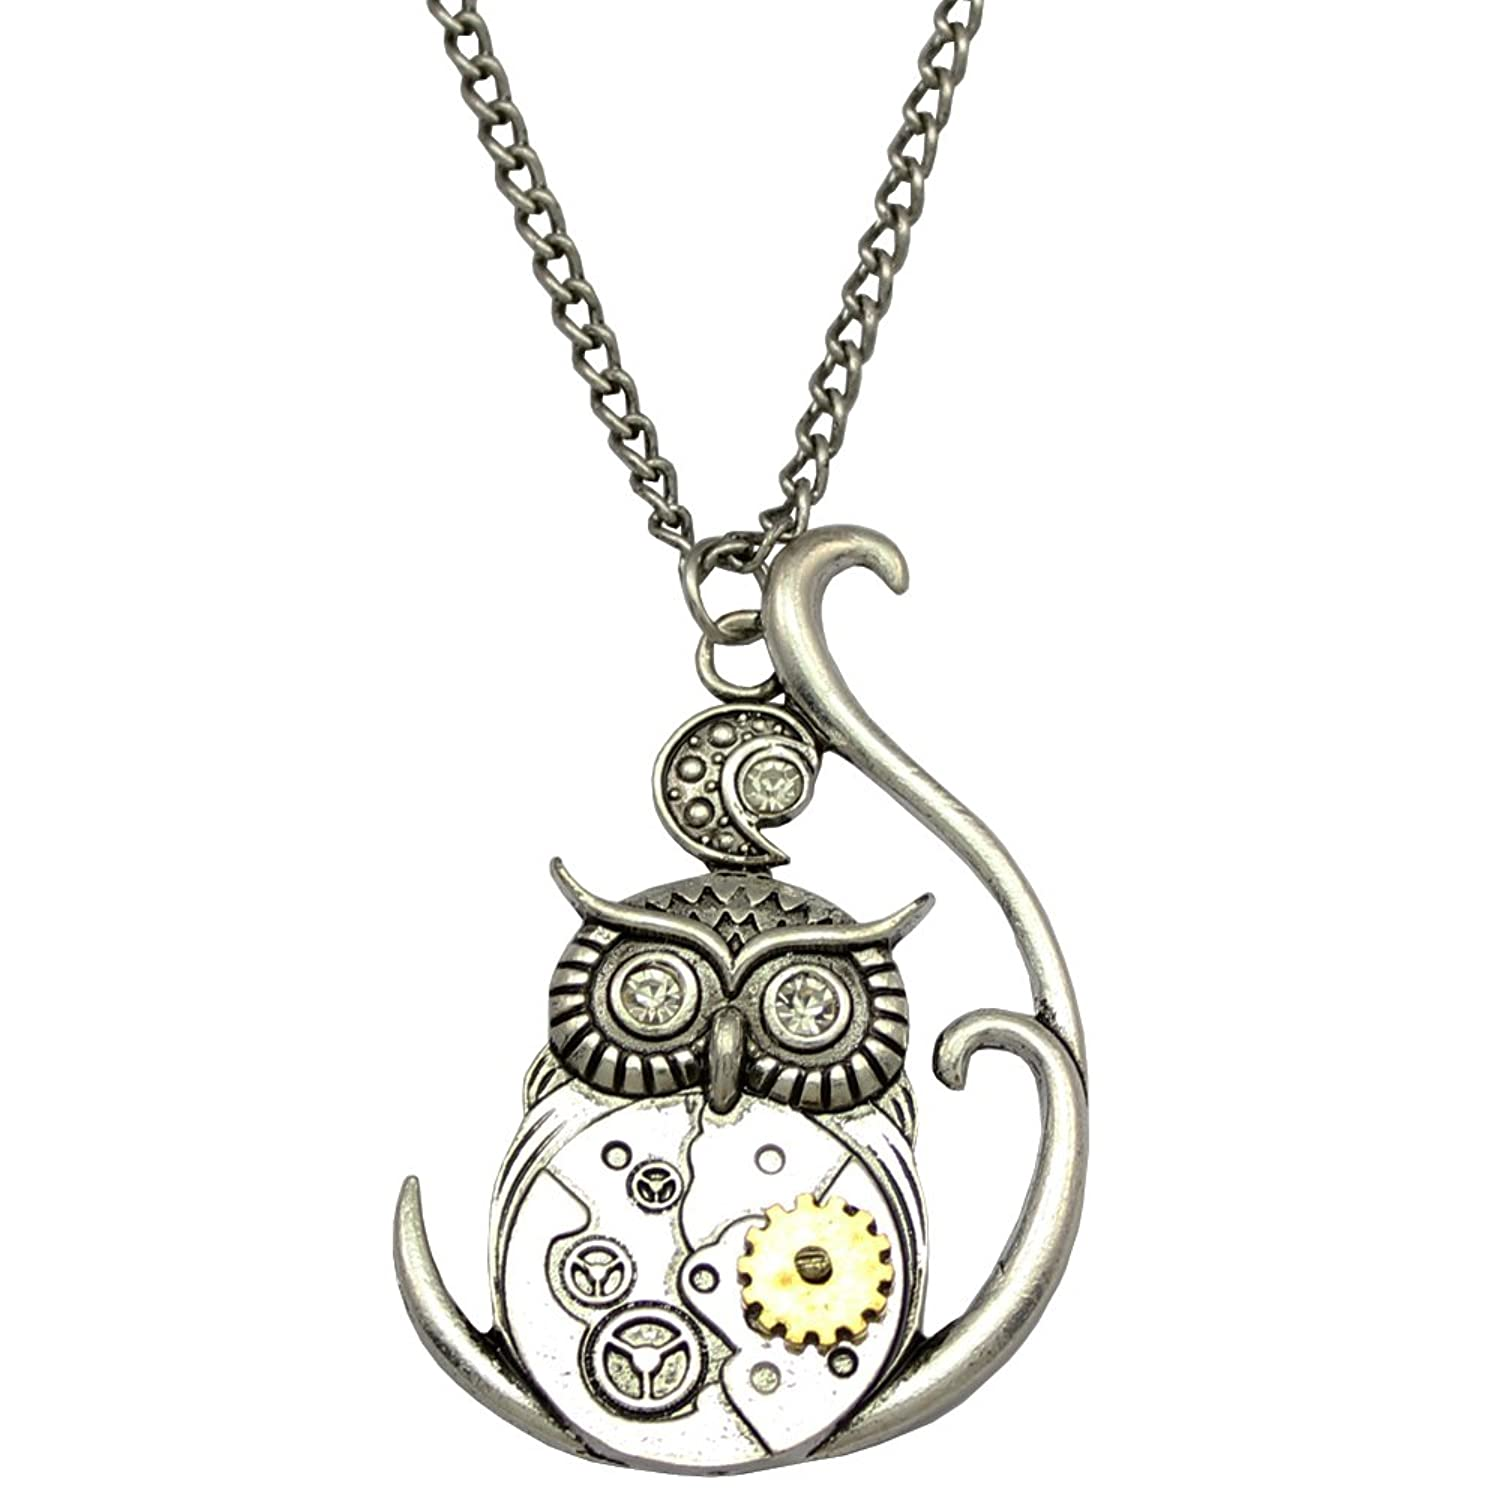 Vintage Style Jewelry, Retro Jewelry Vintage Ornate 3D Owl Moon Watch Clock Hand Gear Cog Steampunk Chain Fancy Dress Necklace $8.49 AT vintagedancer.com